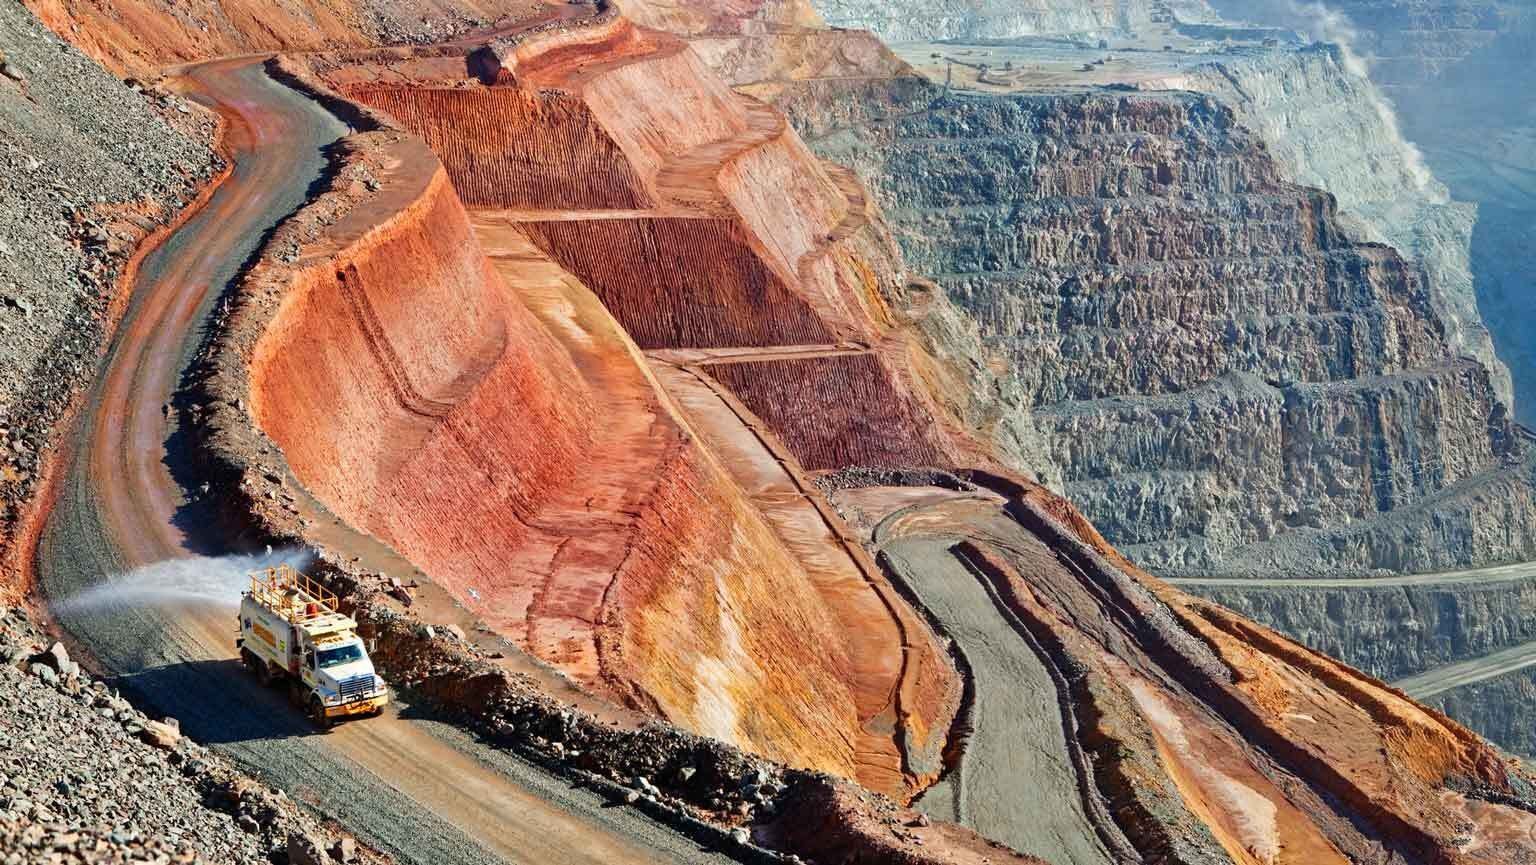 Water truck dampens road at KCGM mine (the Super Pit)